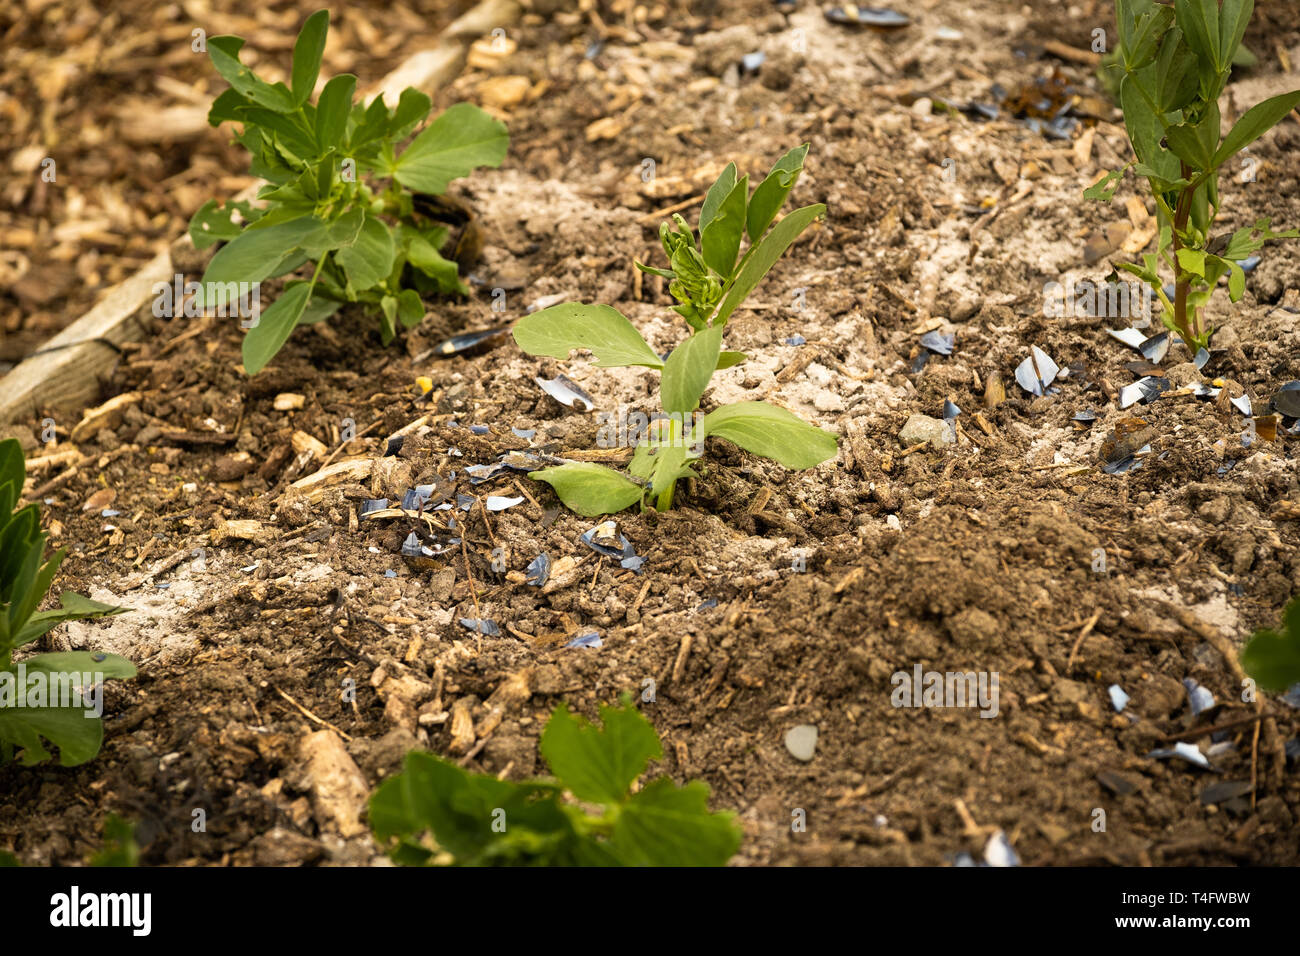 Vegetable gardening in the UK - young broad bean plants in a raised bed on an allotment garden surrounded by a dusting of fresh wood ash and crushed mussel shells to protect them from being eaten by slugs Stock Photo